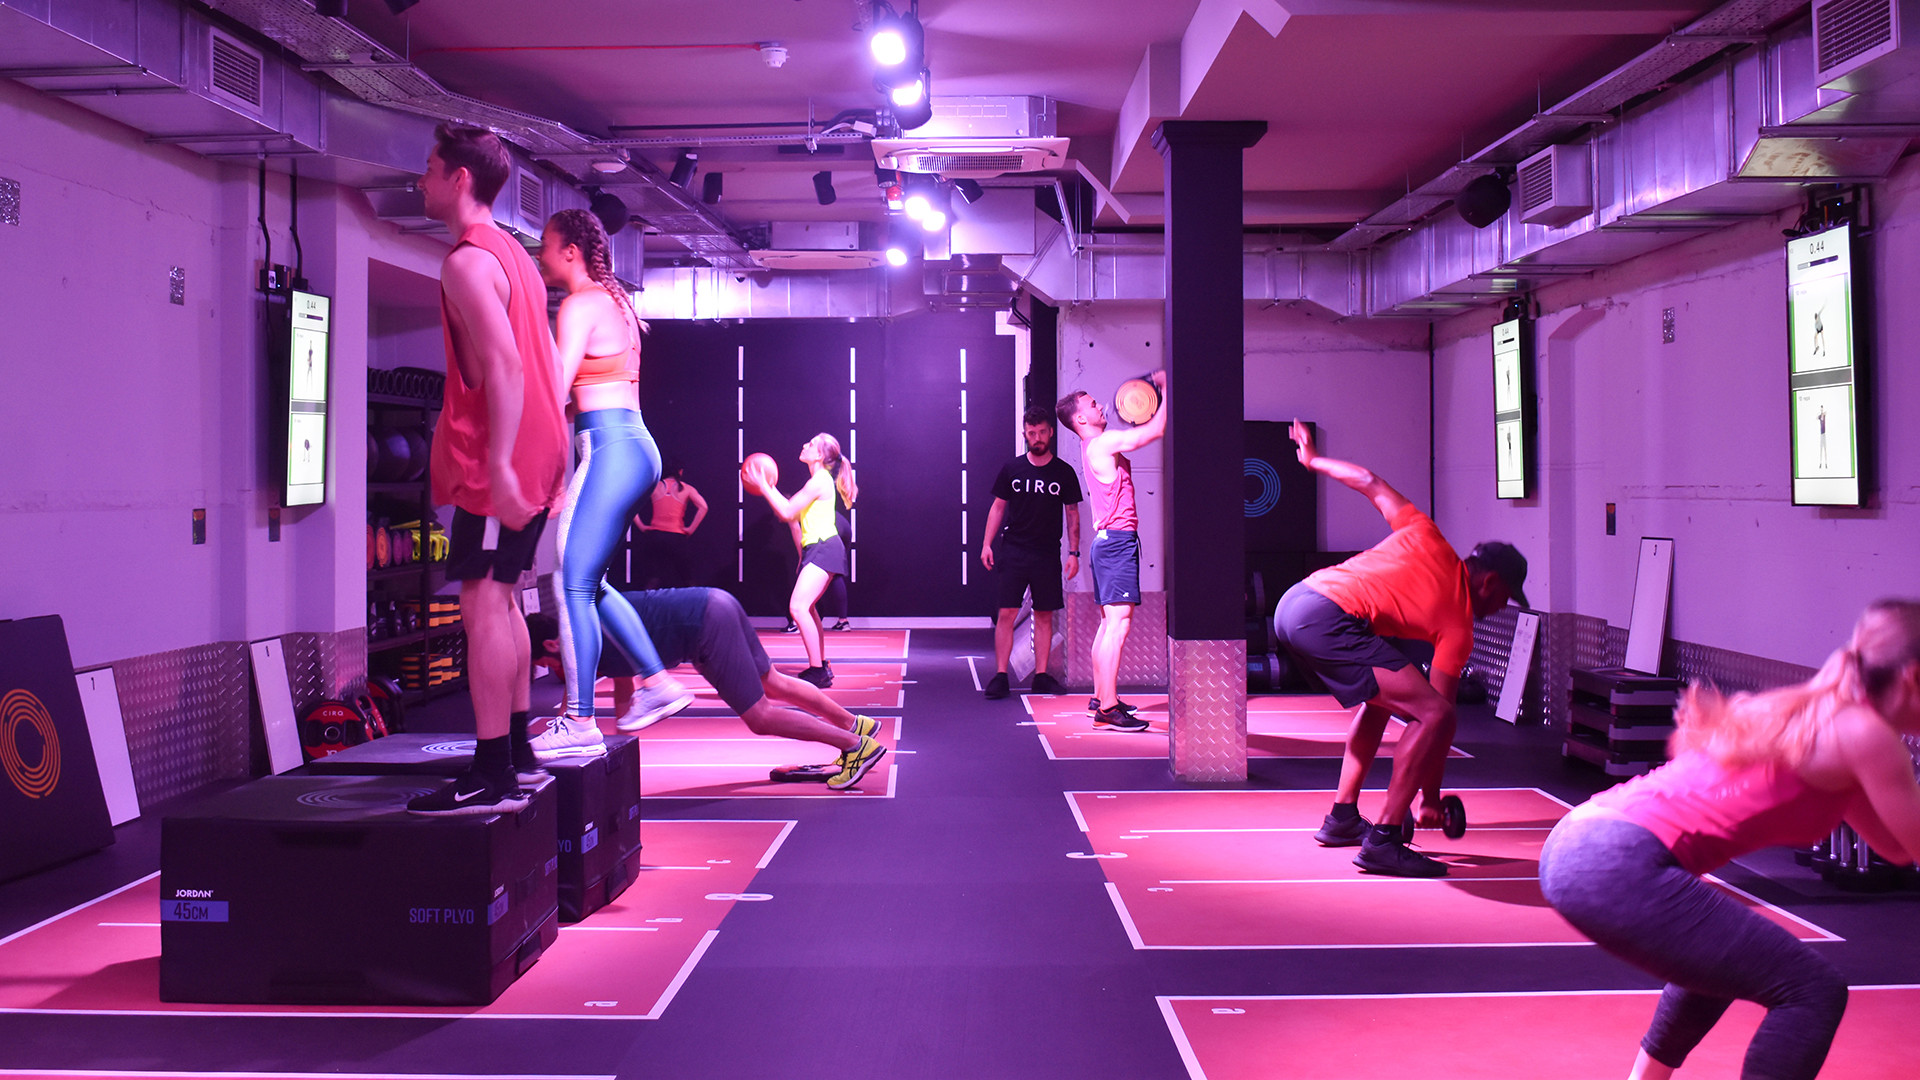 CIRQ workout City of London